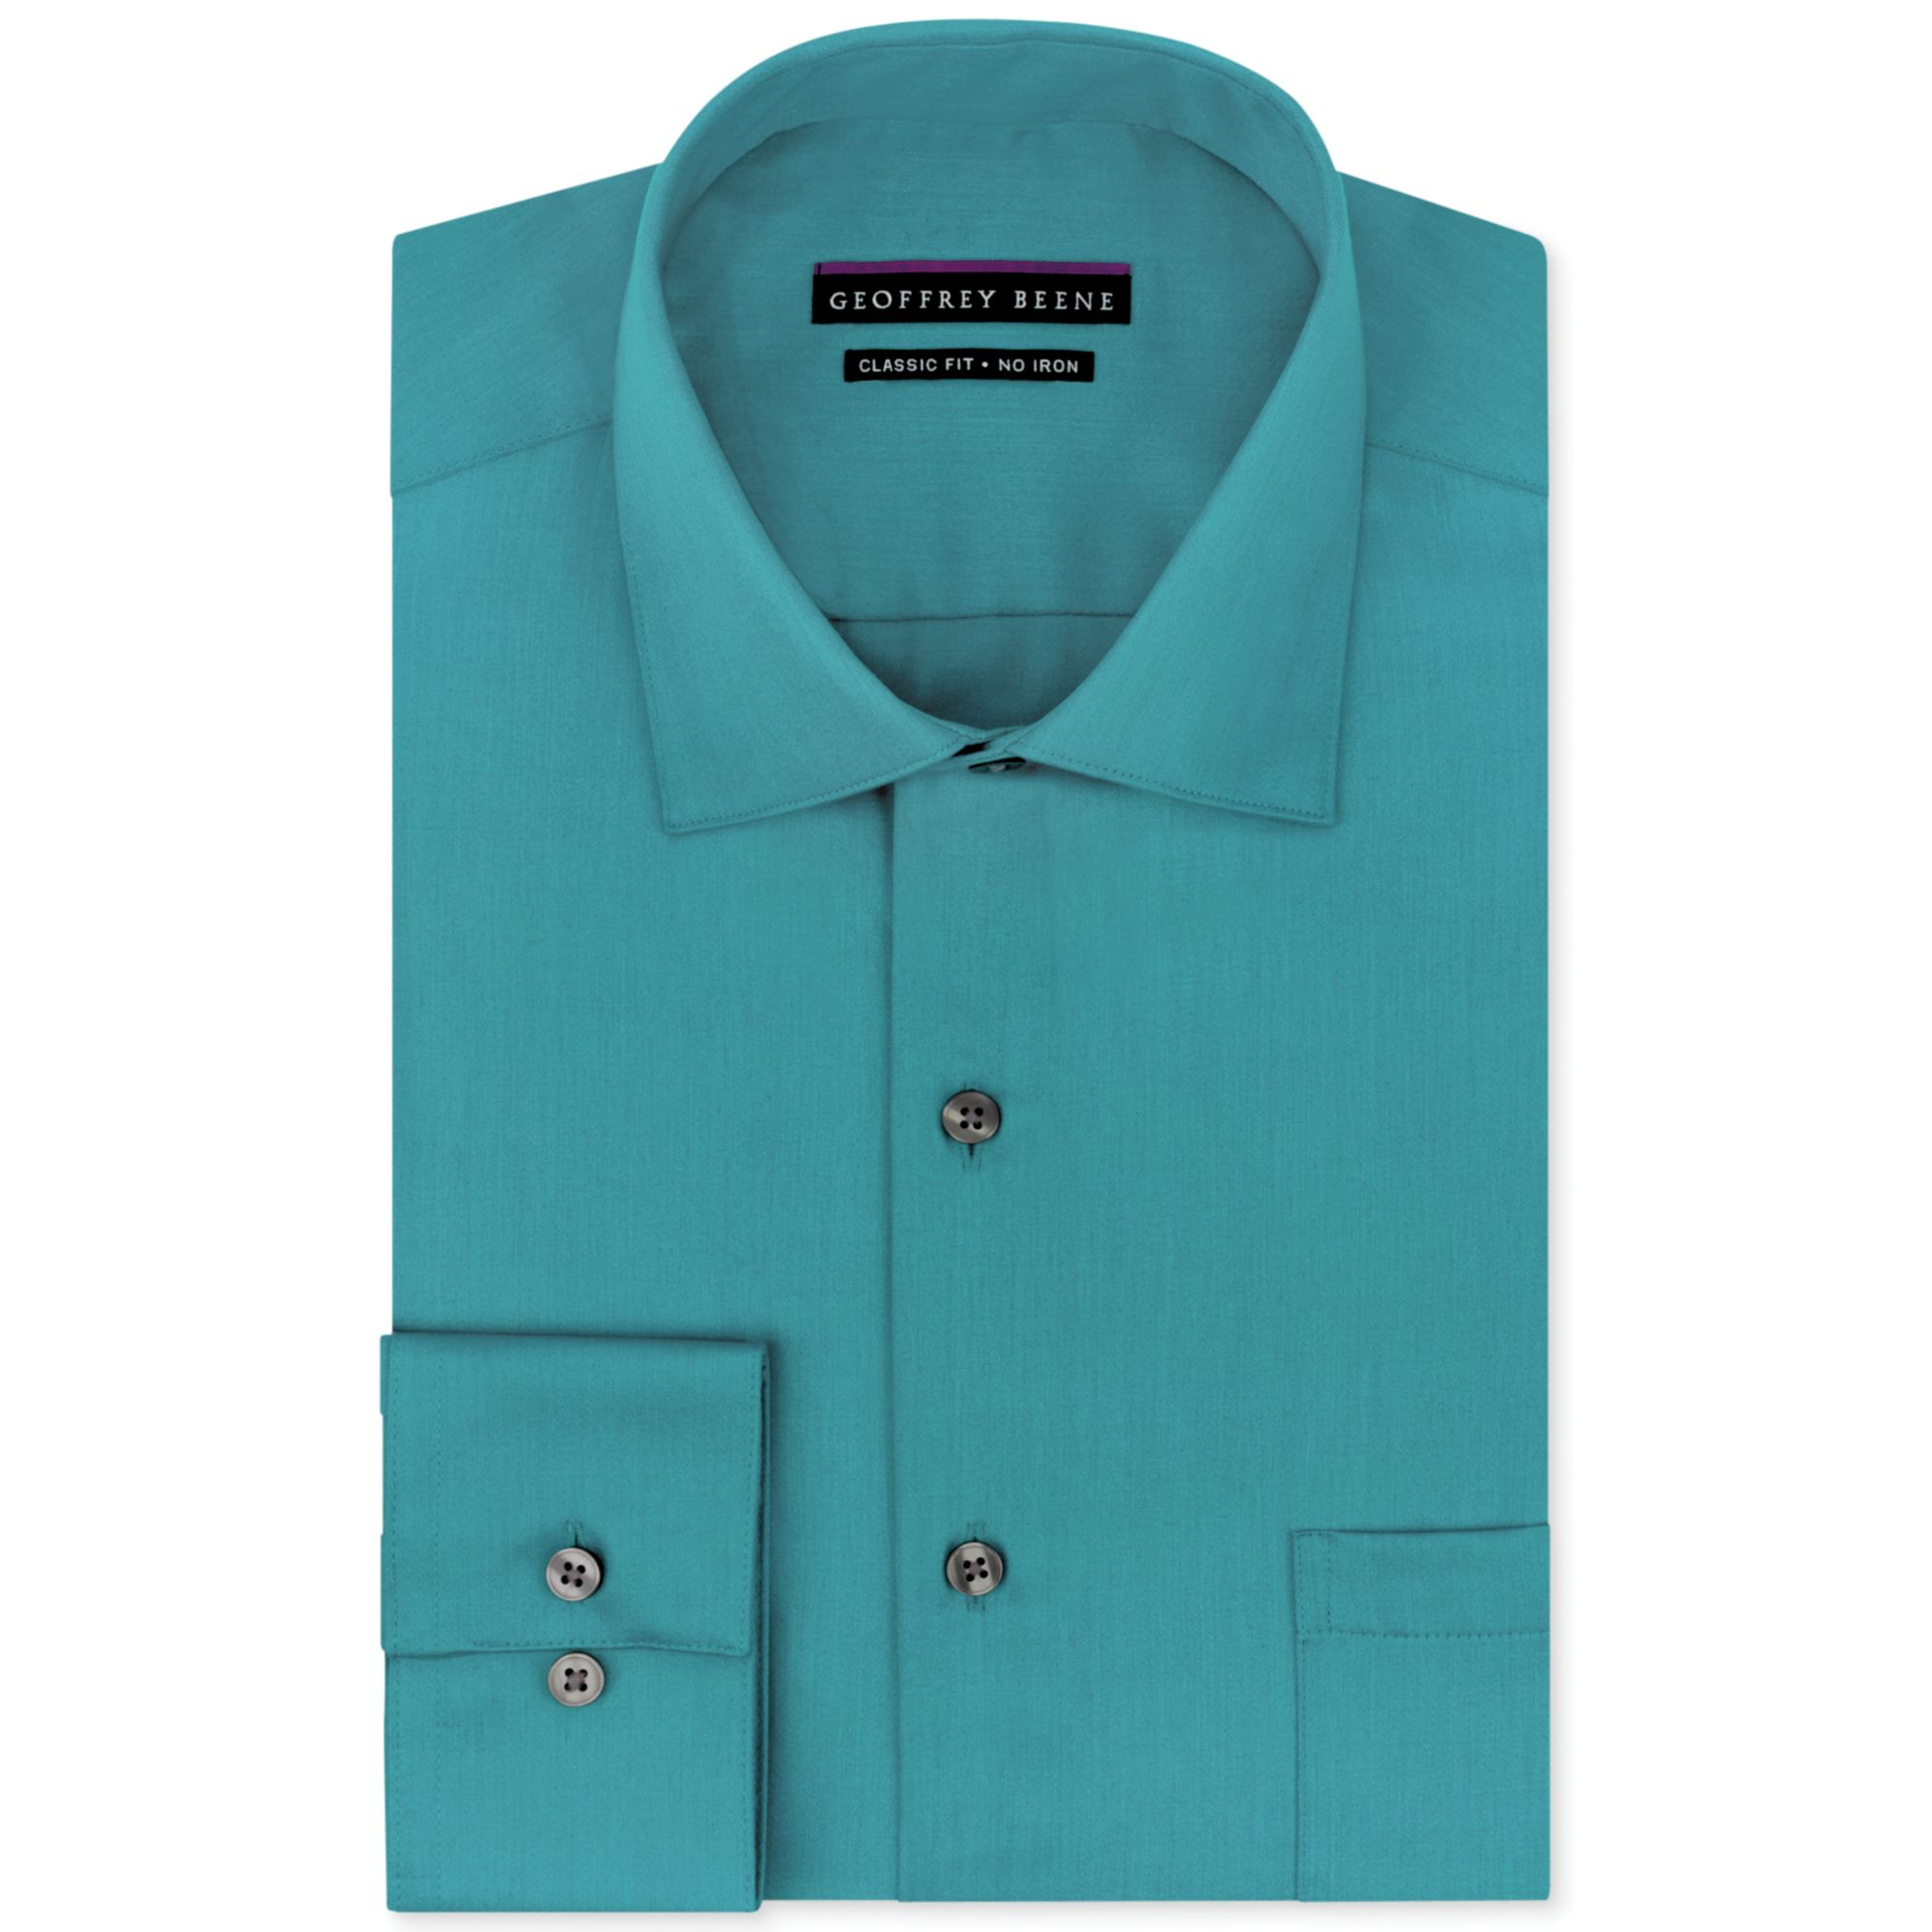 Geoffrey beene big and tall no iron sateen solid dress for Dress shirts for big and tall